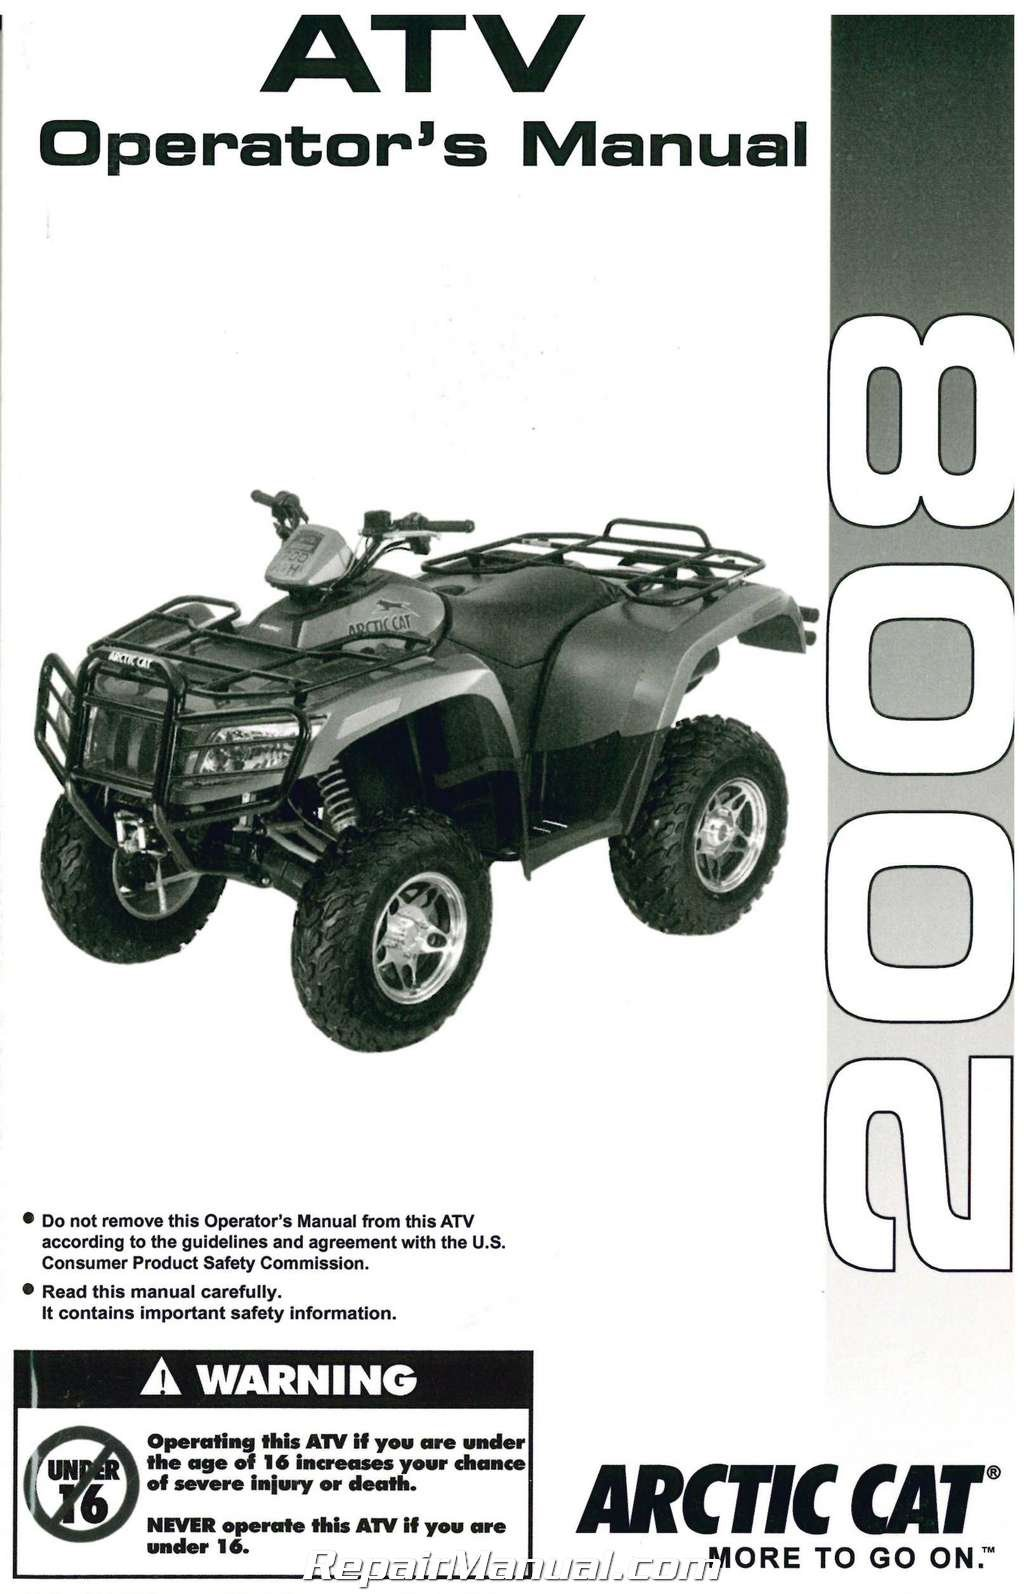 2257-886 2008 Arctic Cat ATV 400 500 650 700 Owners Manual: Manufacturer:  Amazon.com: Books